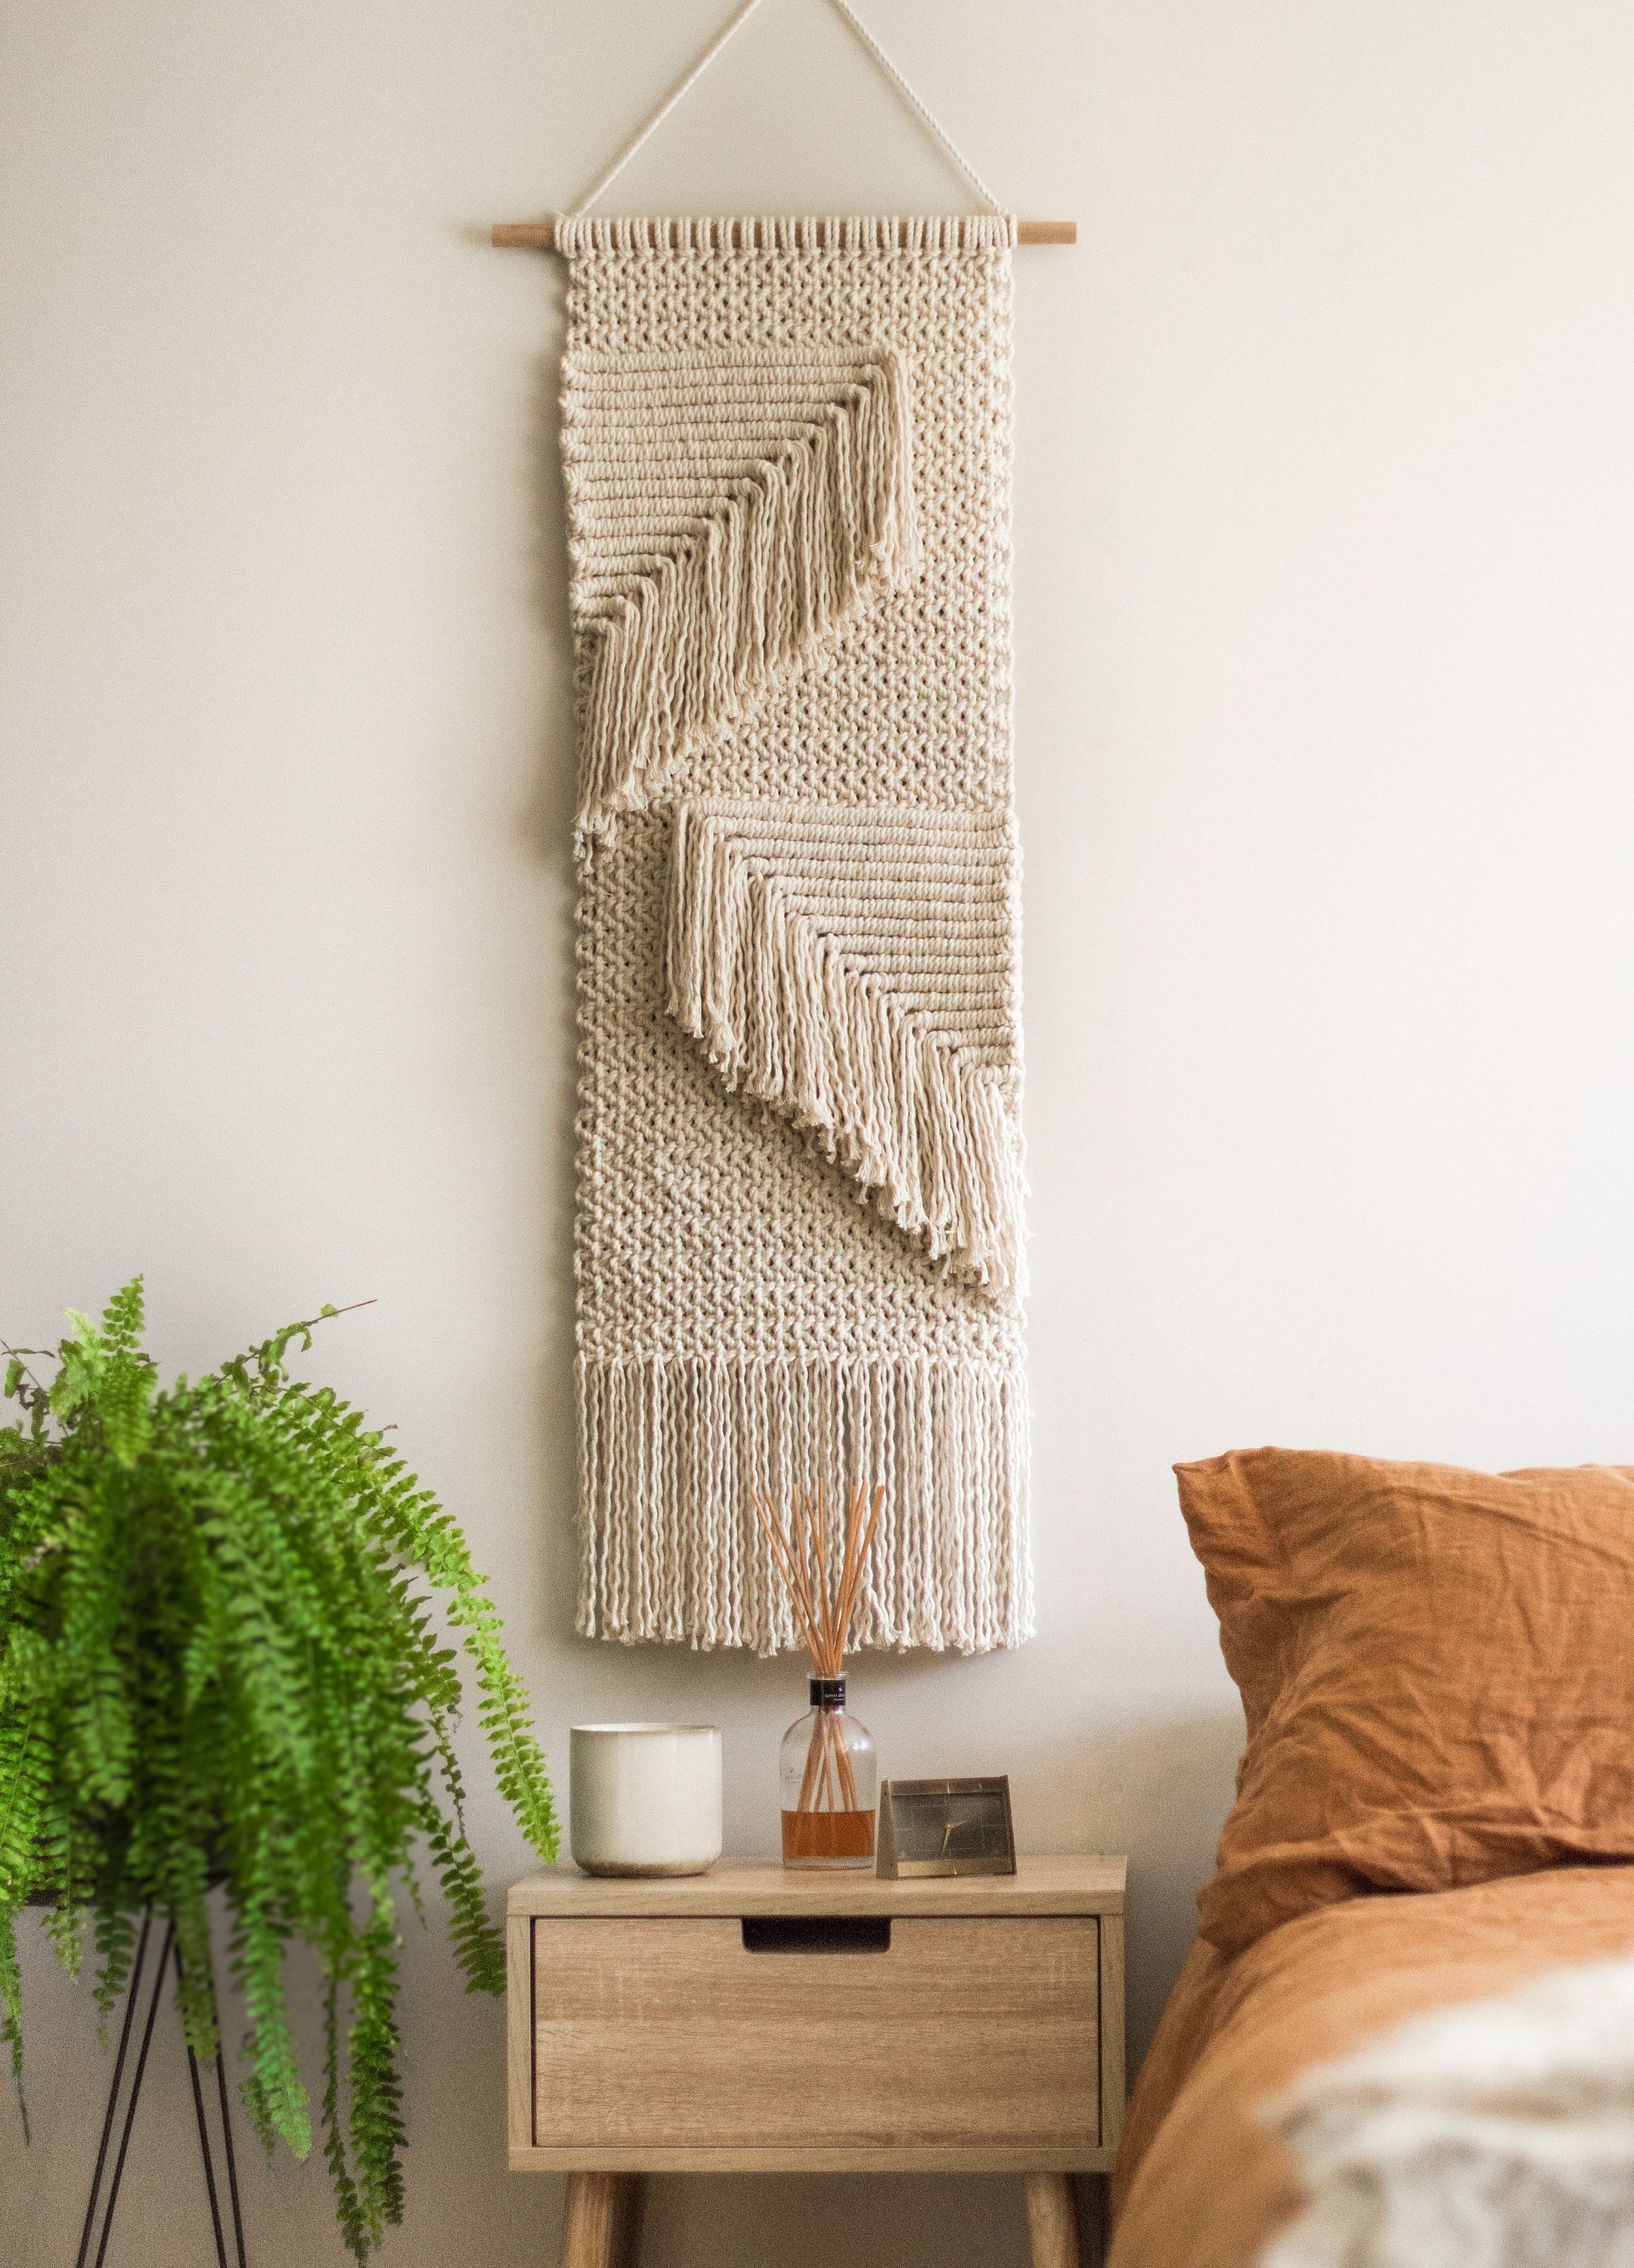 Hanging Wall Mirror With Macrame Round Bohemian Handmade Cotton Rope Decorative Mirror For Apartment Living Room Bedroom Entryways Mimbarschool Com Ng